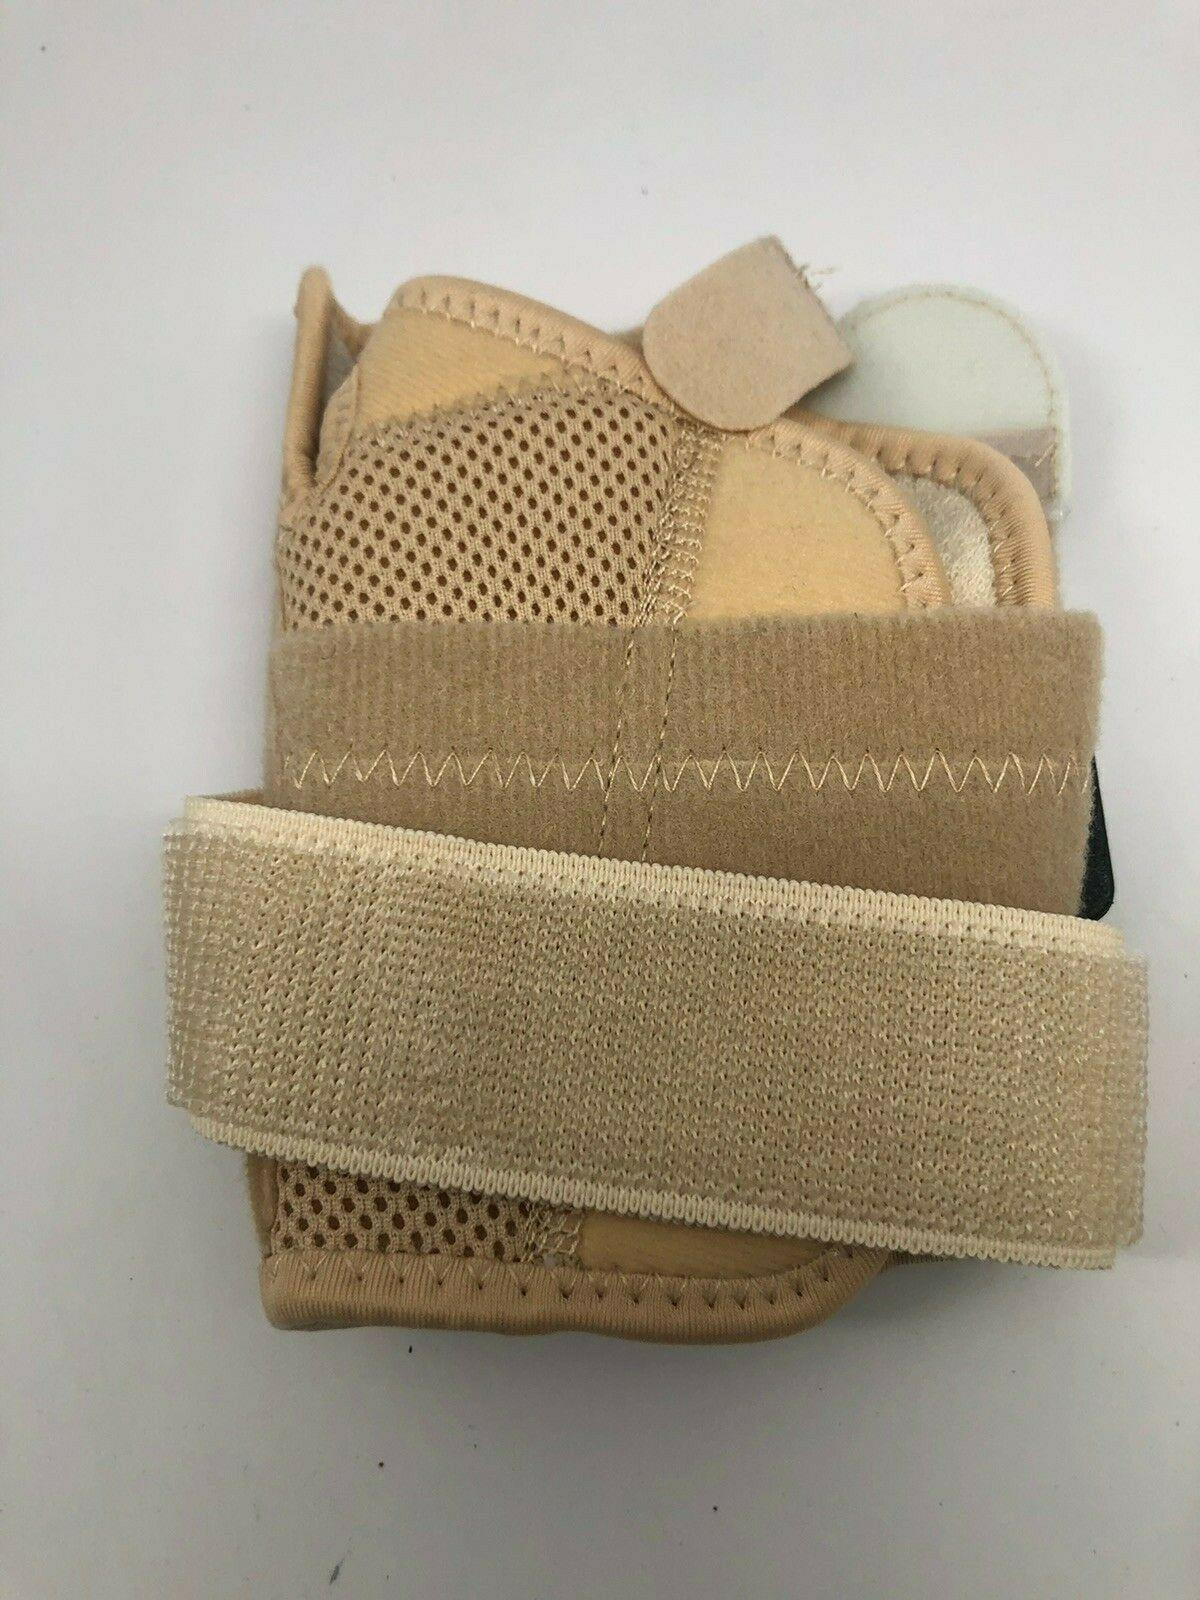 FLA Orthopedics Soft Fit Suede Finish Lg  Right Wrist Brace